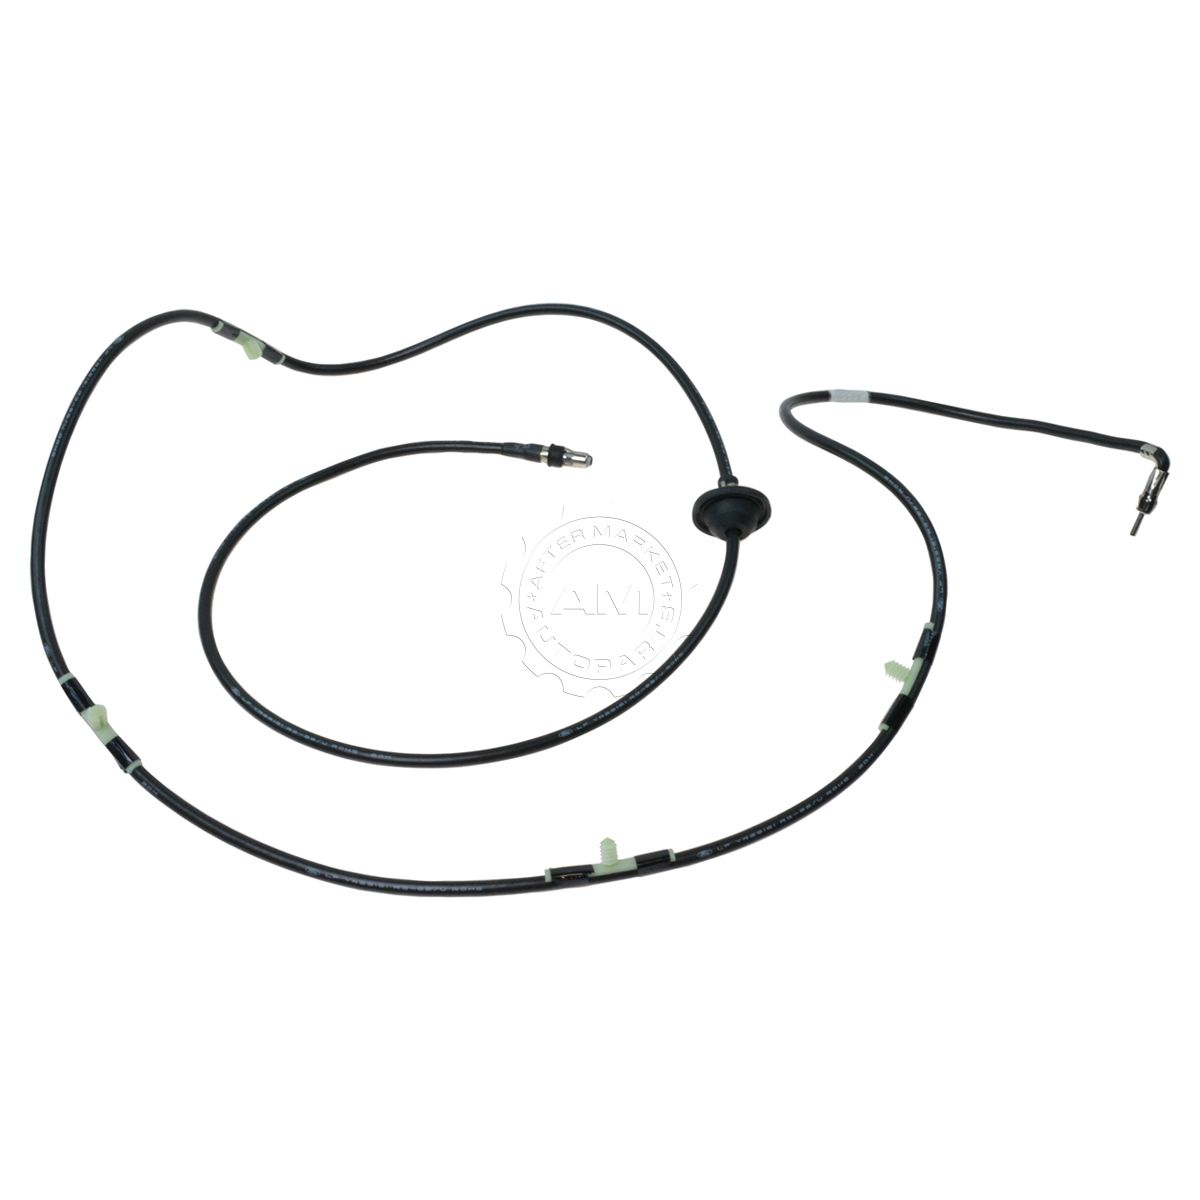 Oem F65z Ad Radio Arial Antenna Lead In Cable For